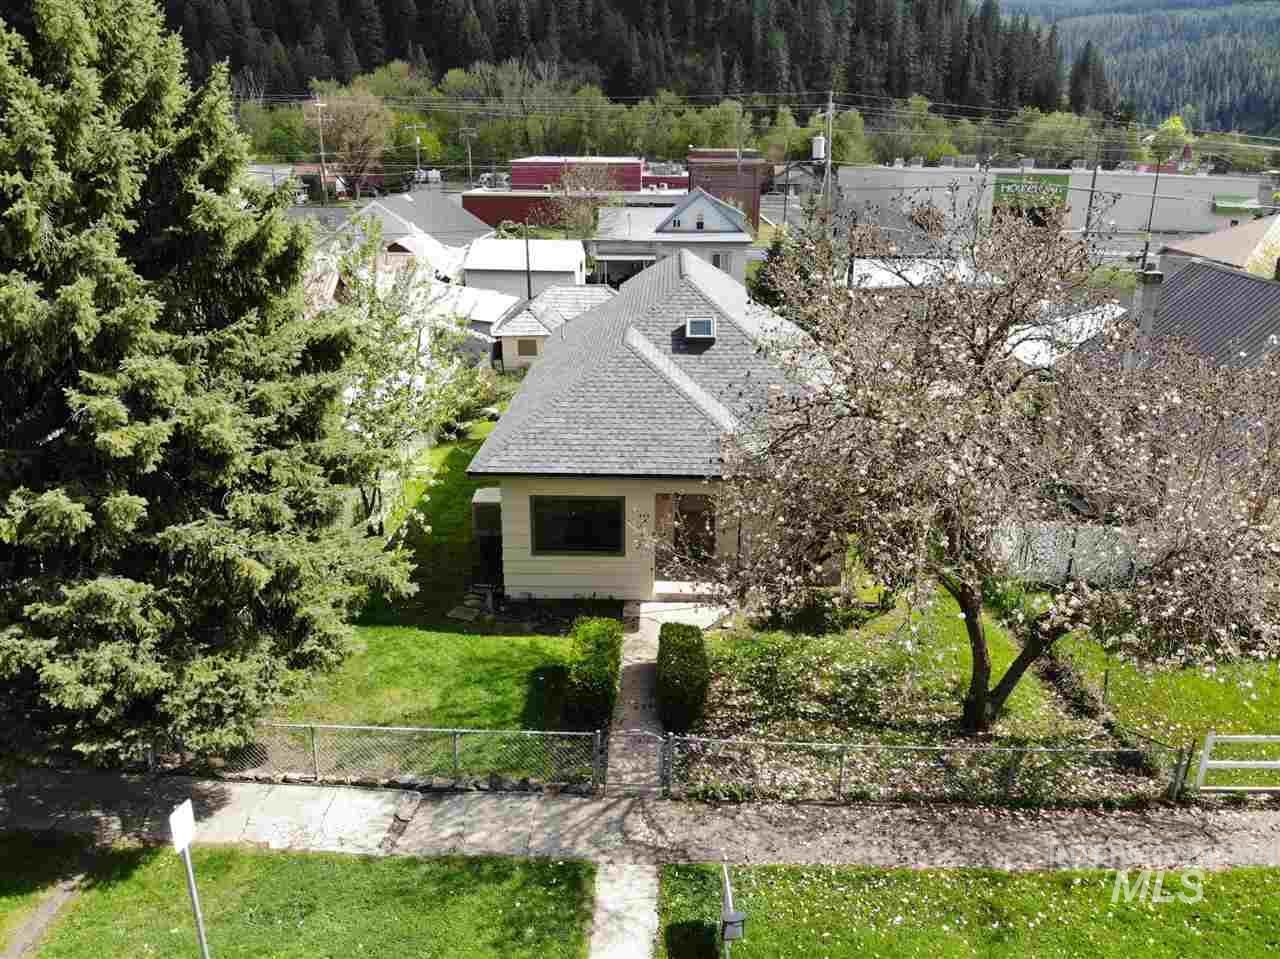 445 Brown Ave, Orofino, ID 83544 - MLS#: 98754051